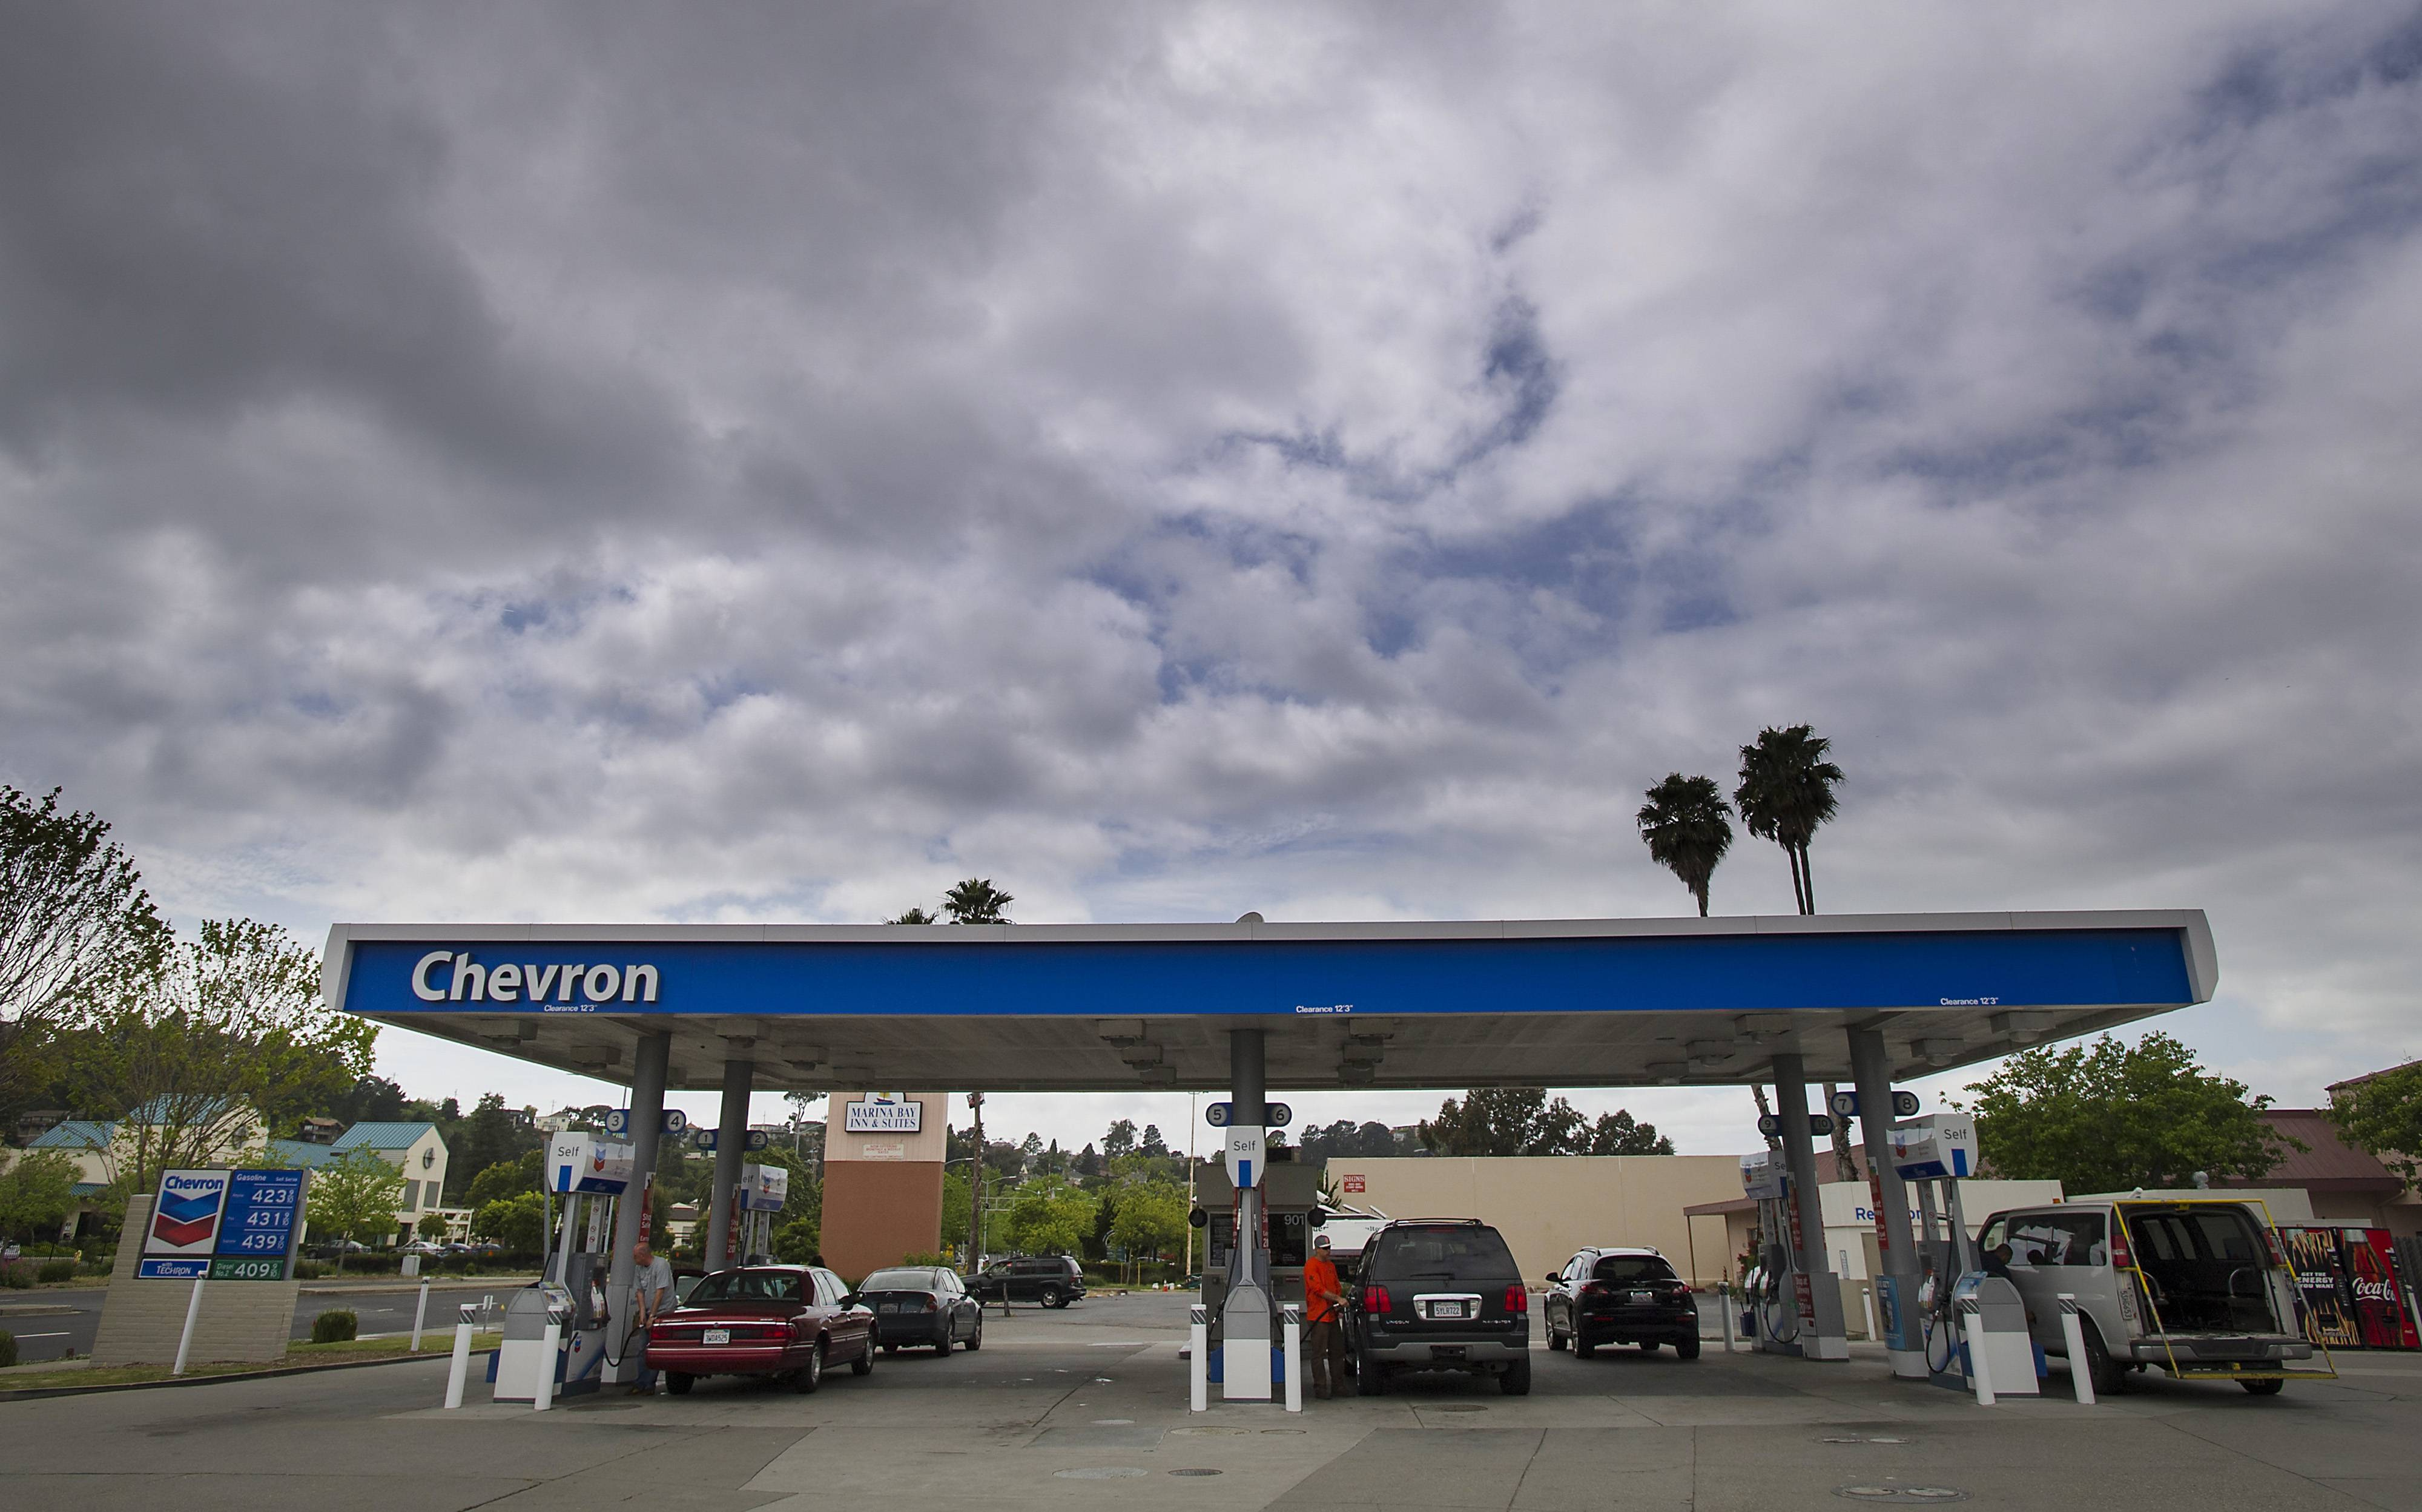 Chevron Corp. earnings rose 5.6 percent in the second quarter on asset sales and higher global oil prices, though oil and gas production slipped slightly.